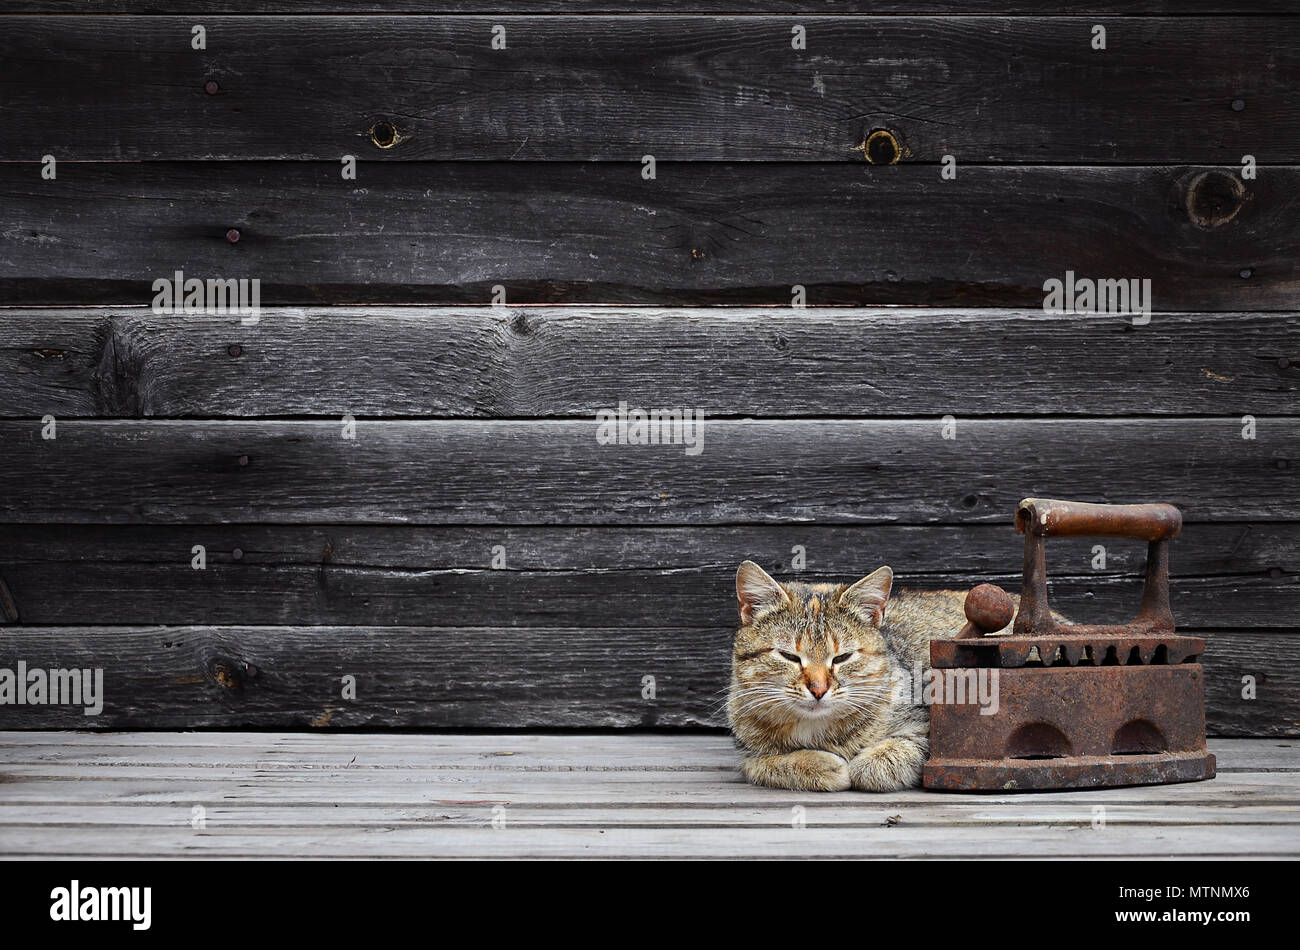 A multi-colored thick cat is located next to a heavy and rusty old coal iron on a wooden surface against a wall of black horizontal wooden boards. Obs Stock Photo